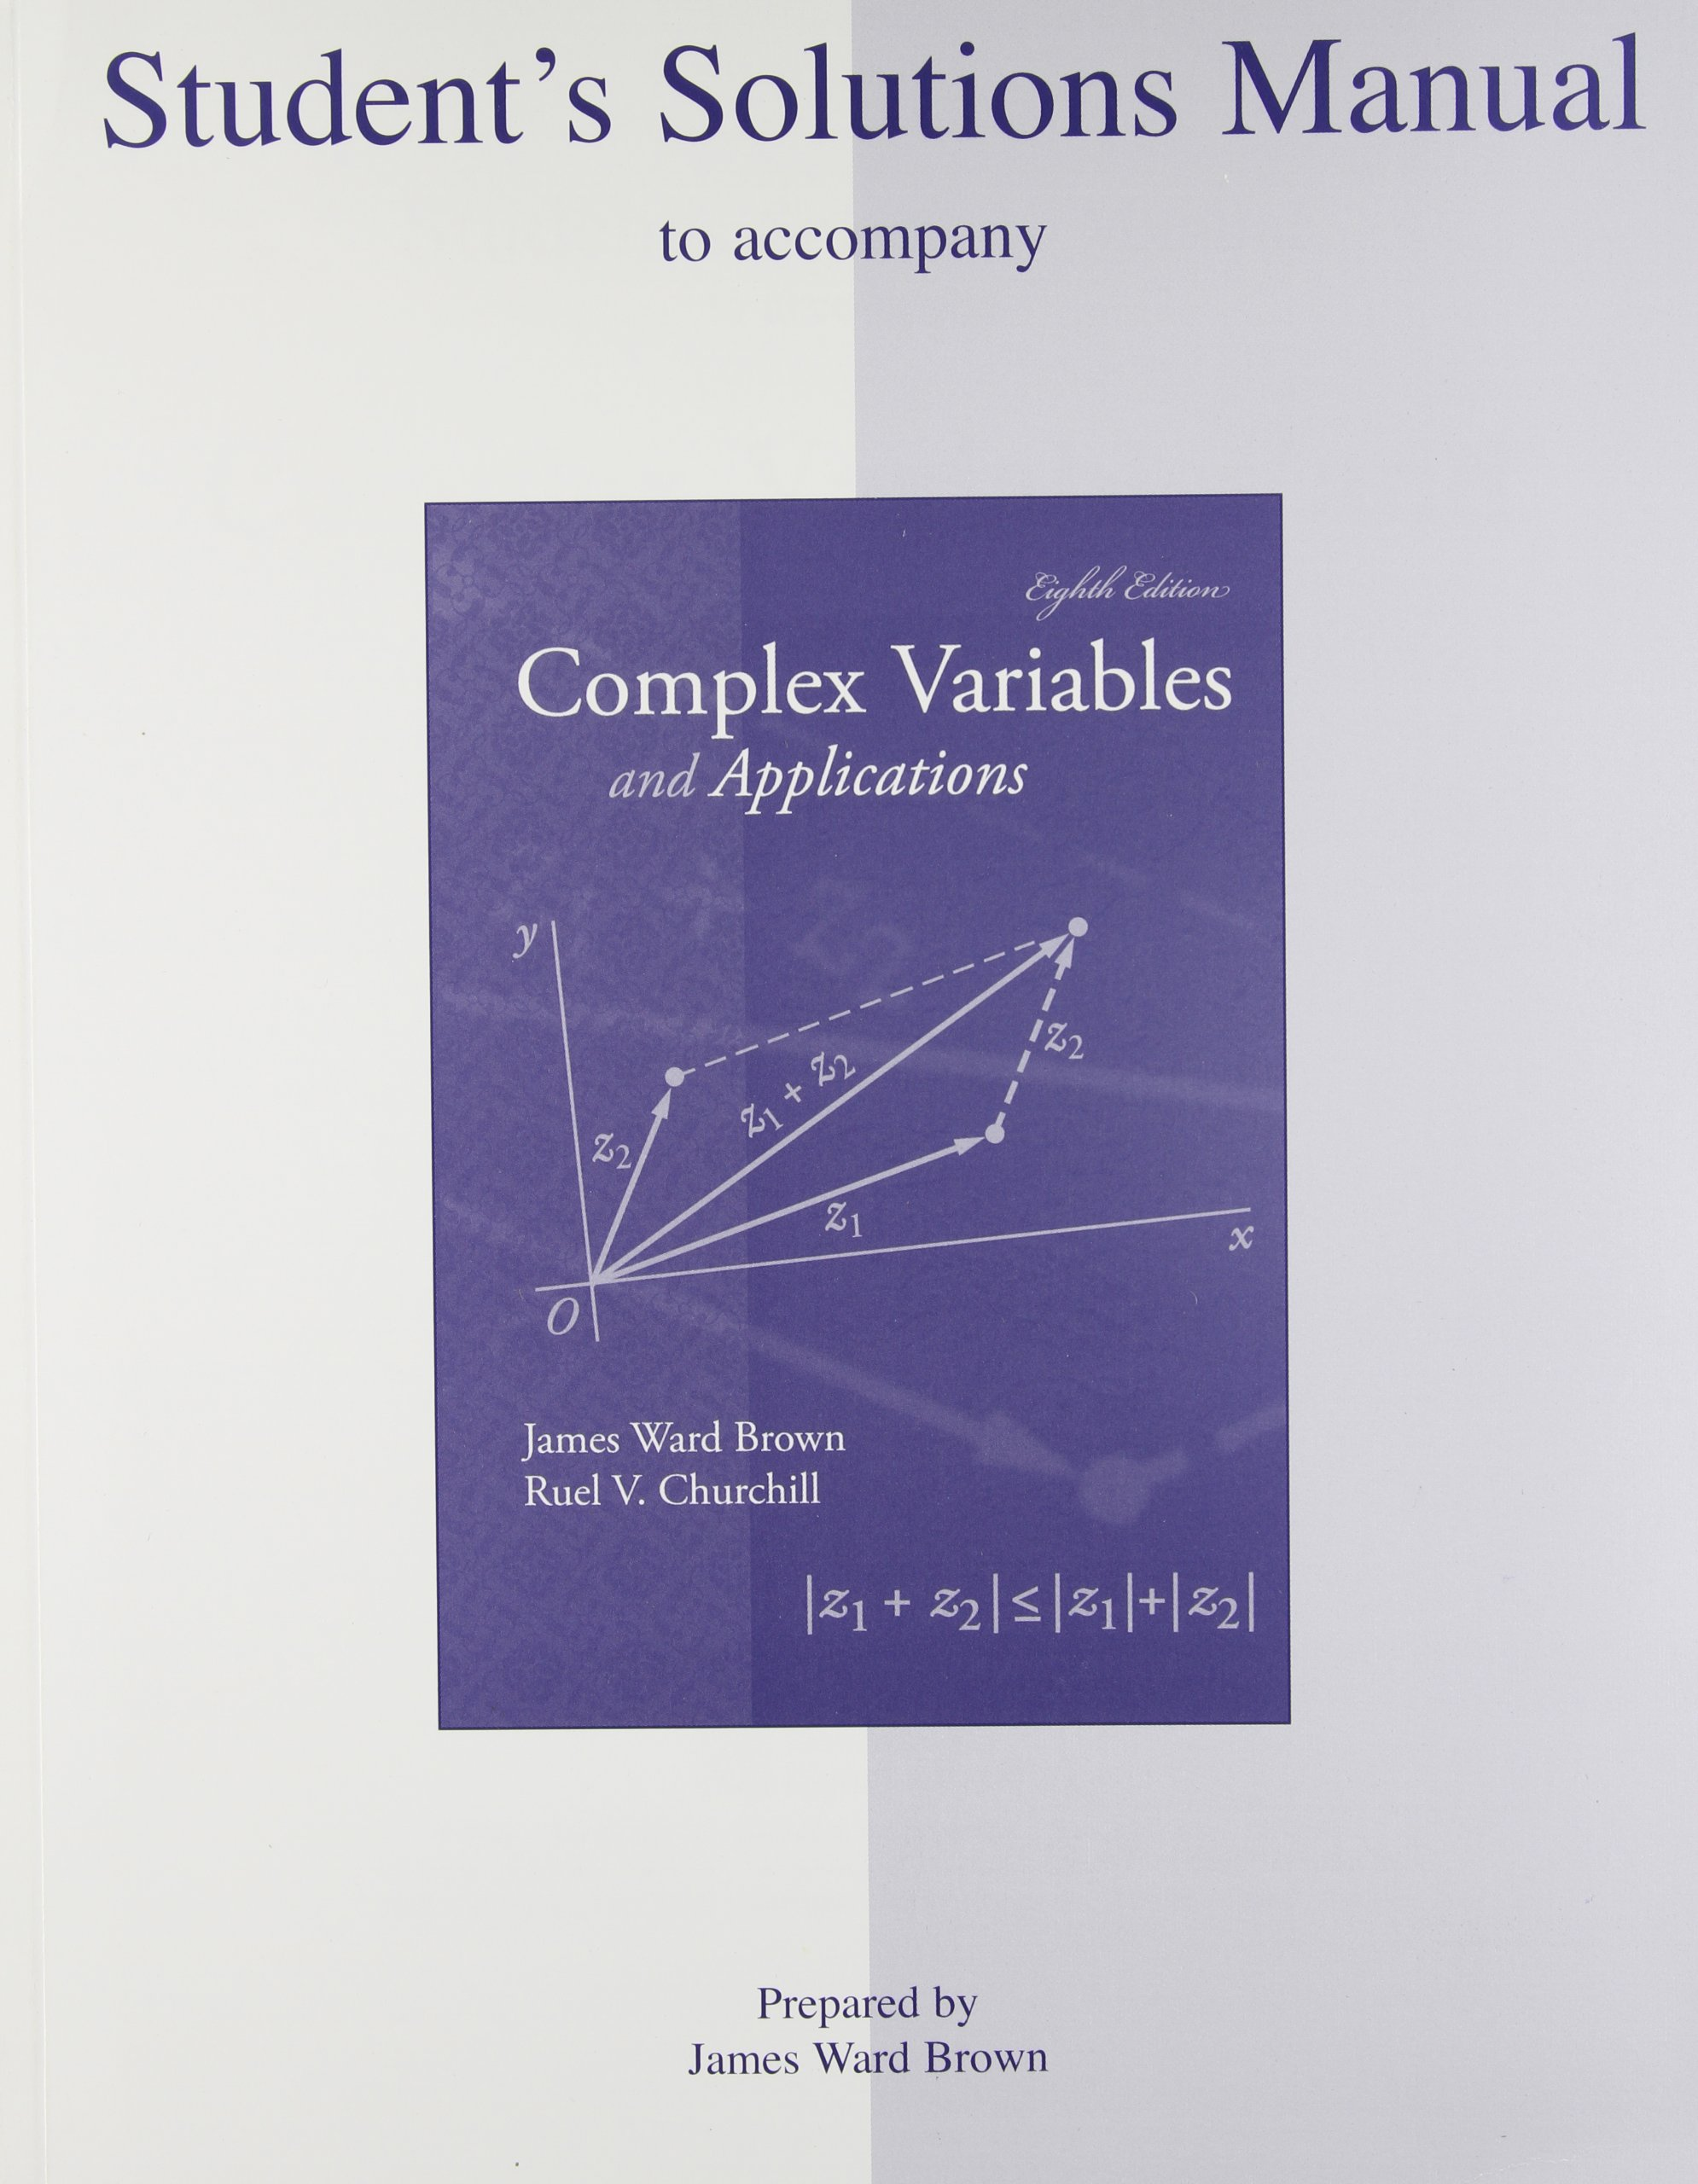 Student's Solutions Manual to accompany Complex Variables and Applications:  James Brown, Ruel Churchill: 9780073337302: Books - Amazon.ca